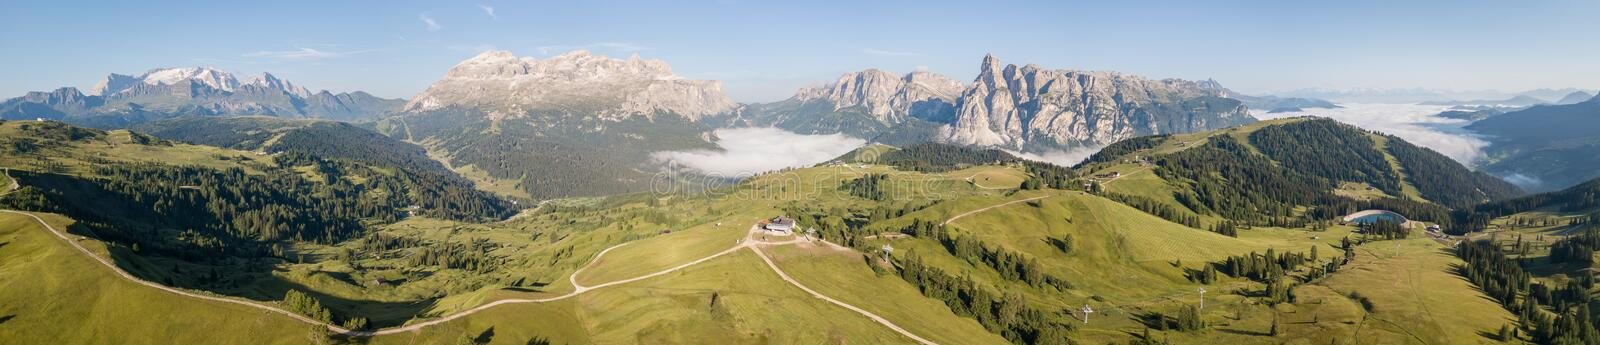 Dolomites, Italy. Amazing drone aerial landscape at Sella, Gardenaccia and Marmolada massifs. Fog at the bottom of the valley stock photo